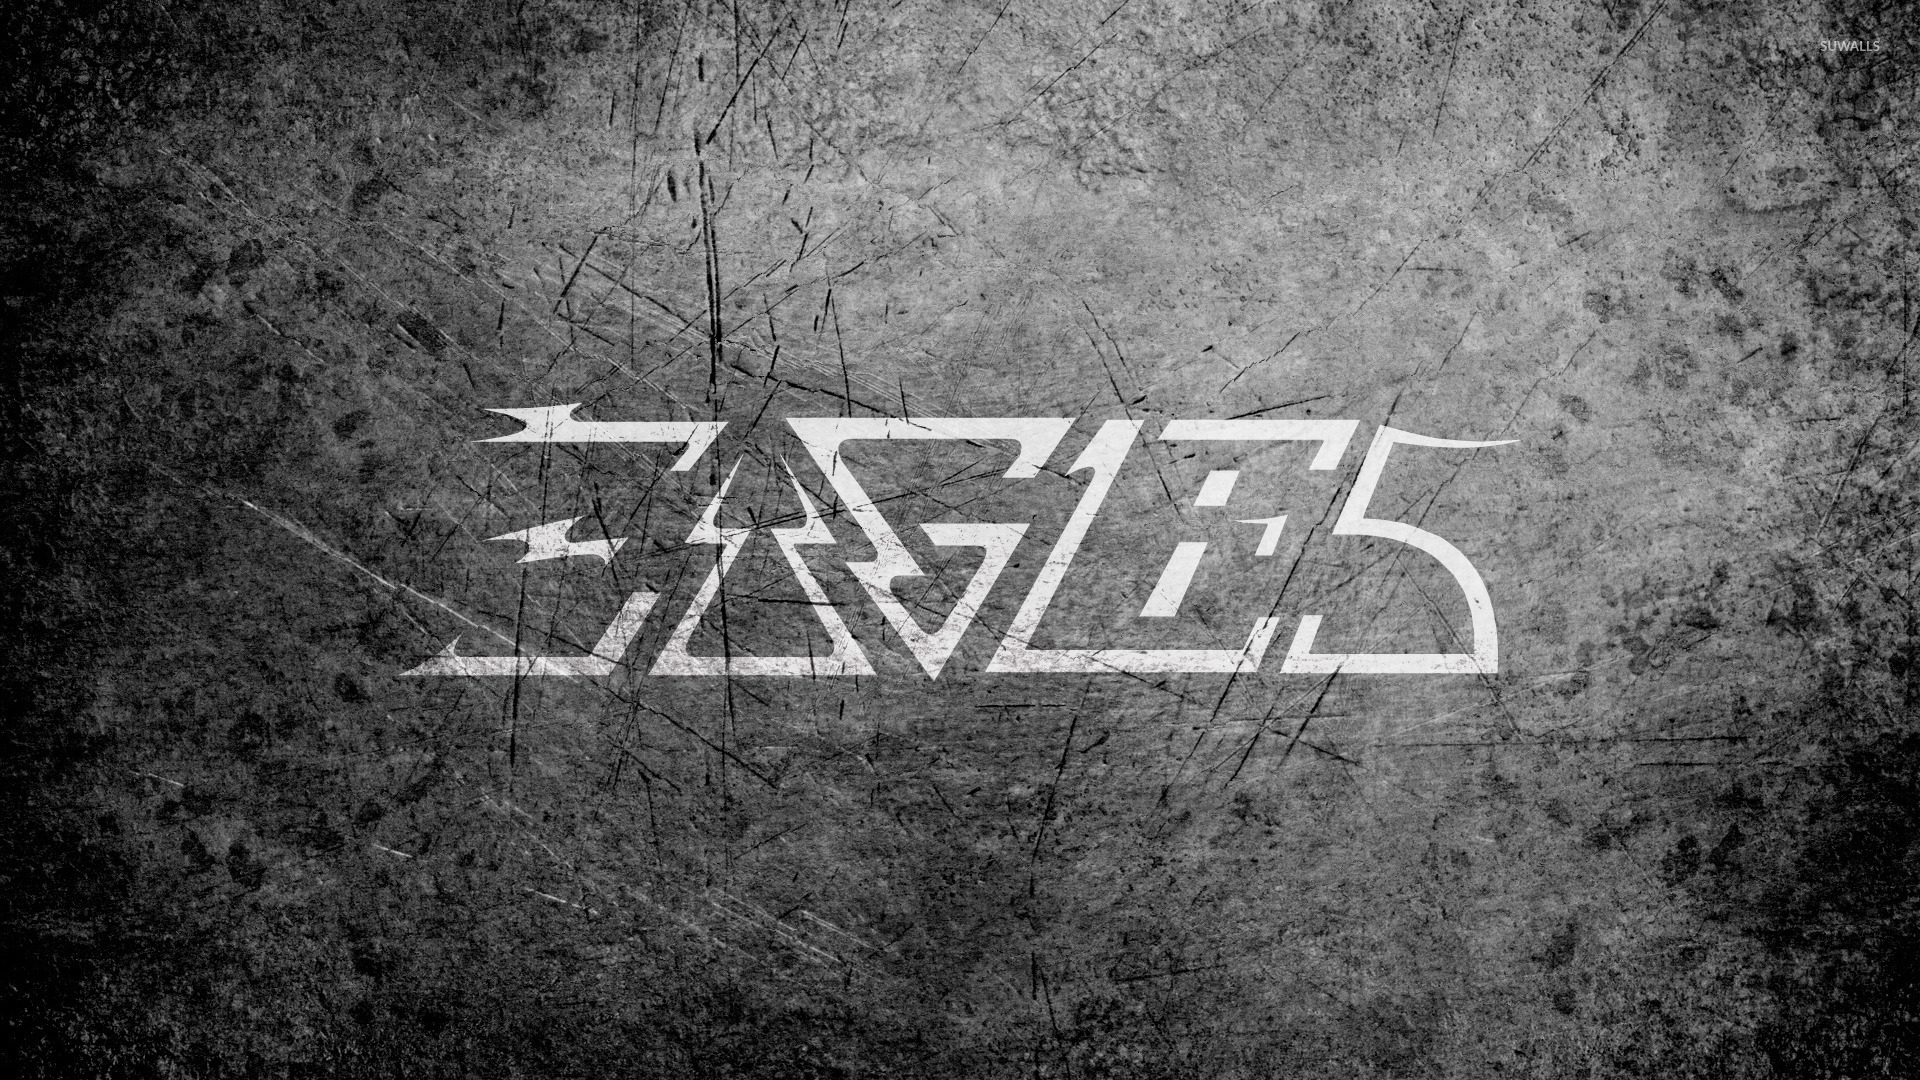 The Eagles Band Wallpaper